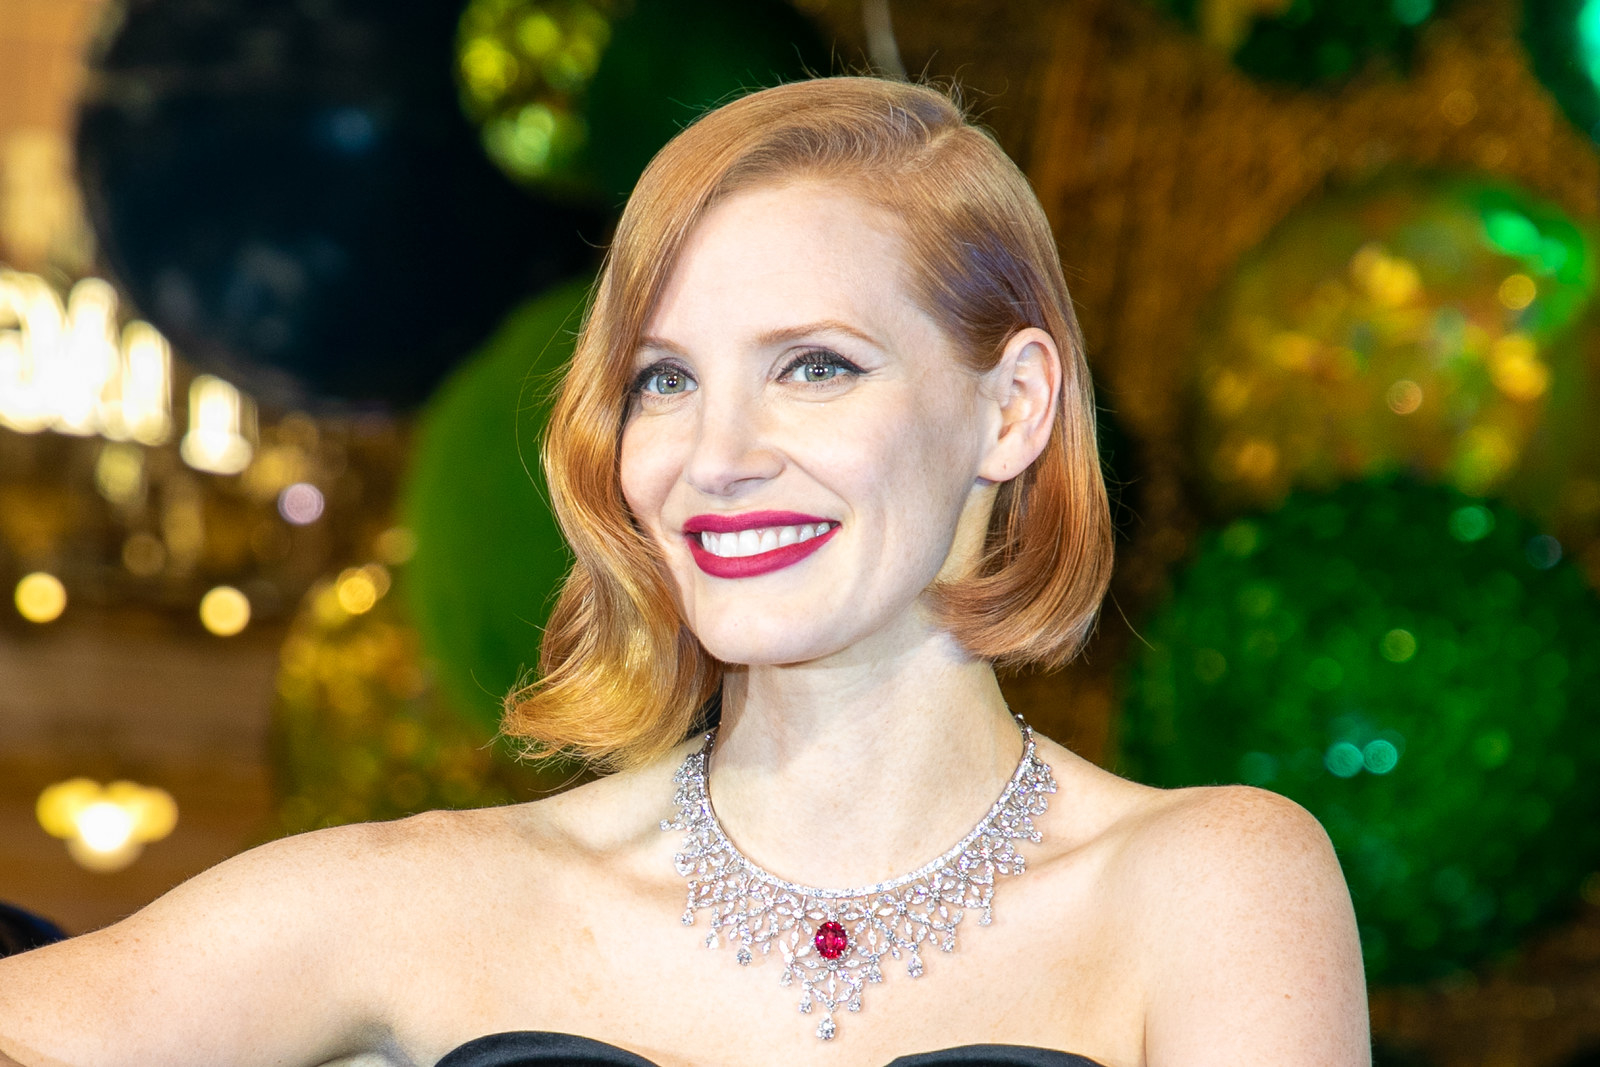 While Jessica Chastain is turning 42 on March 24.